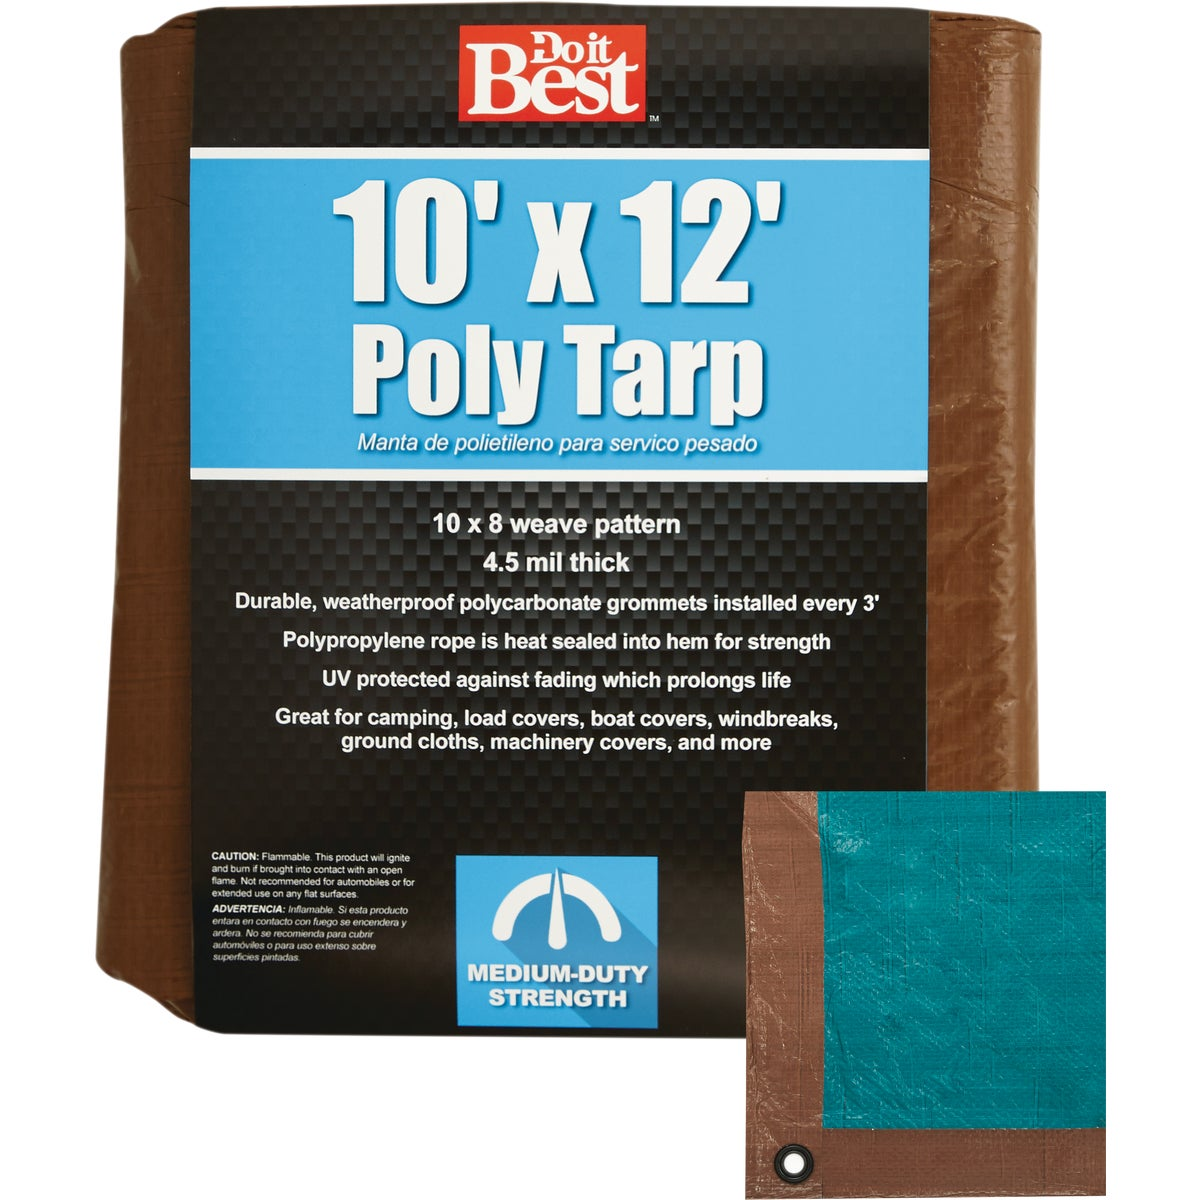 10X12 BR/GR MEDDUTY TARP - 764361 by Do it Best